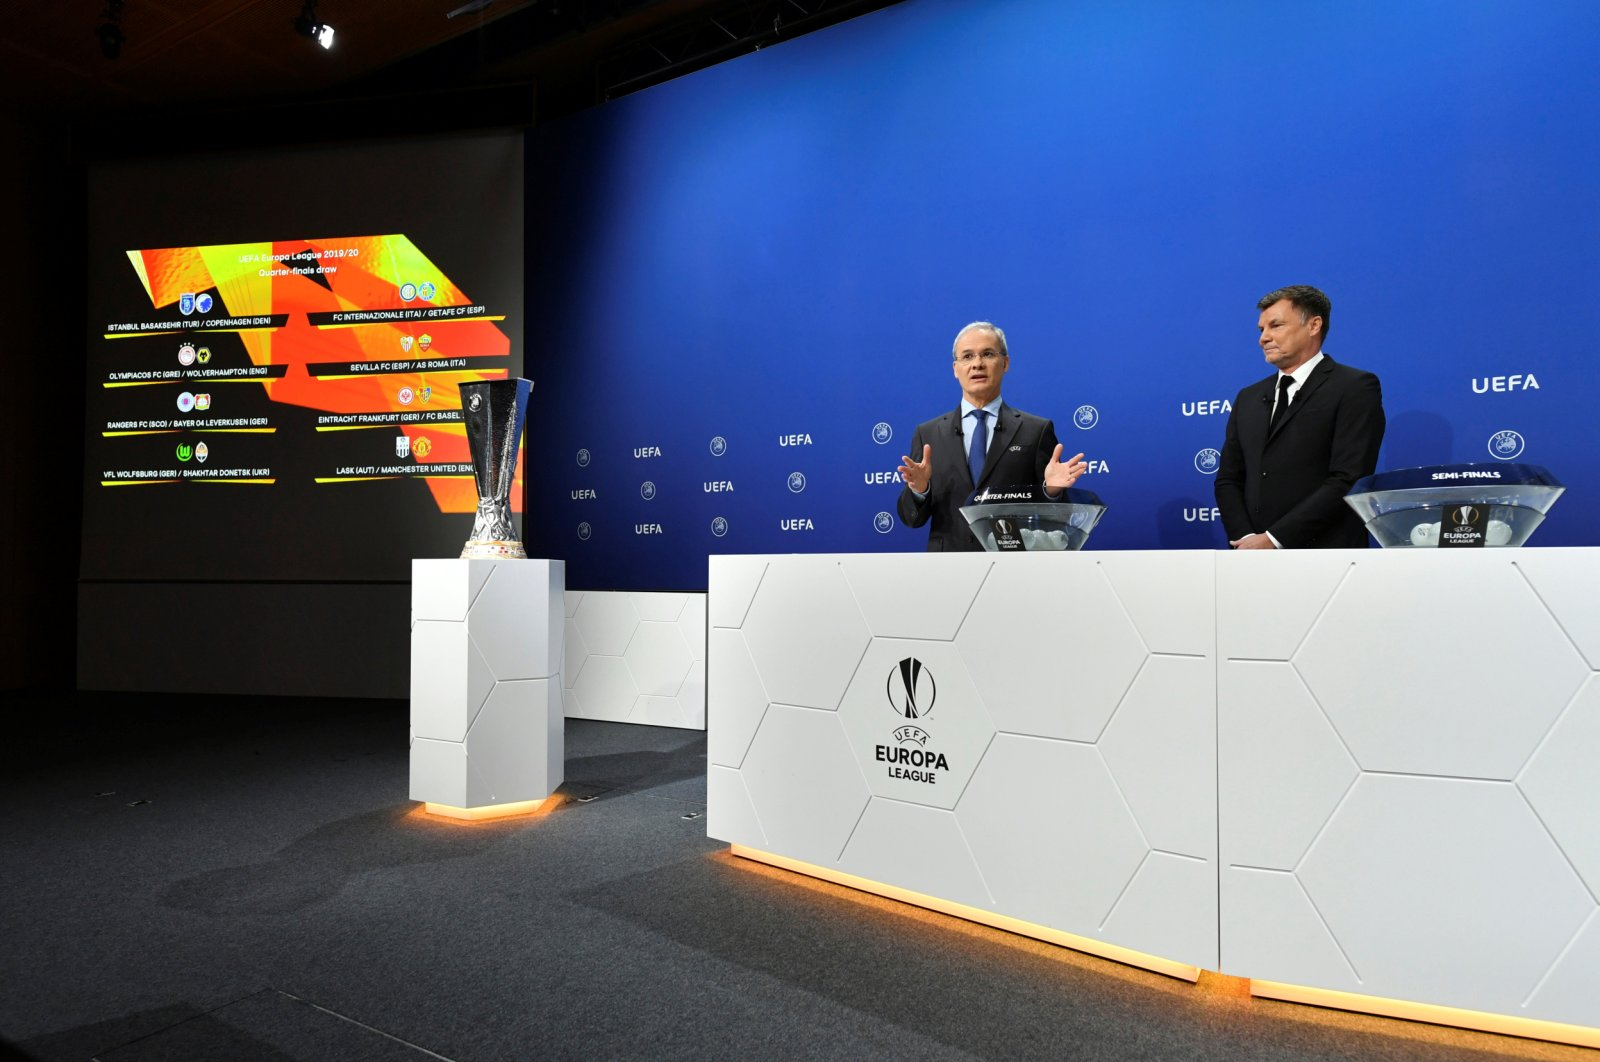 UEFA officials hold a draw for Europa League quarterfinals and semifinals in Nyon, Switzerland, July 10, 2020. (UEFA via Reuters)